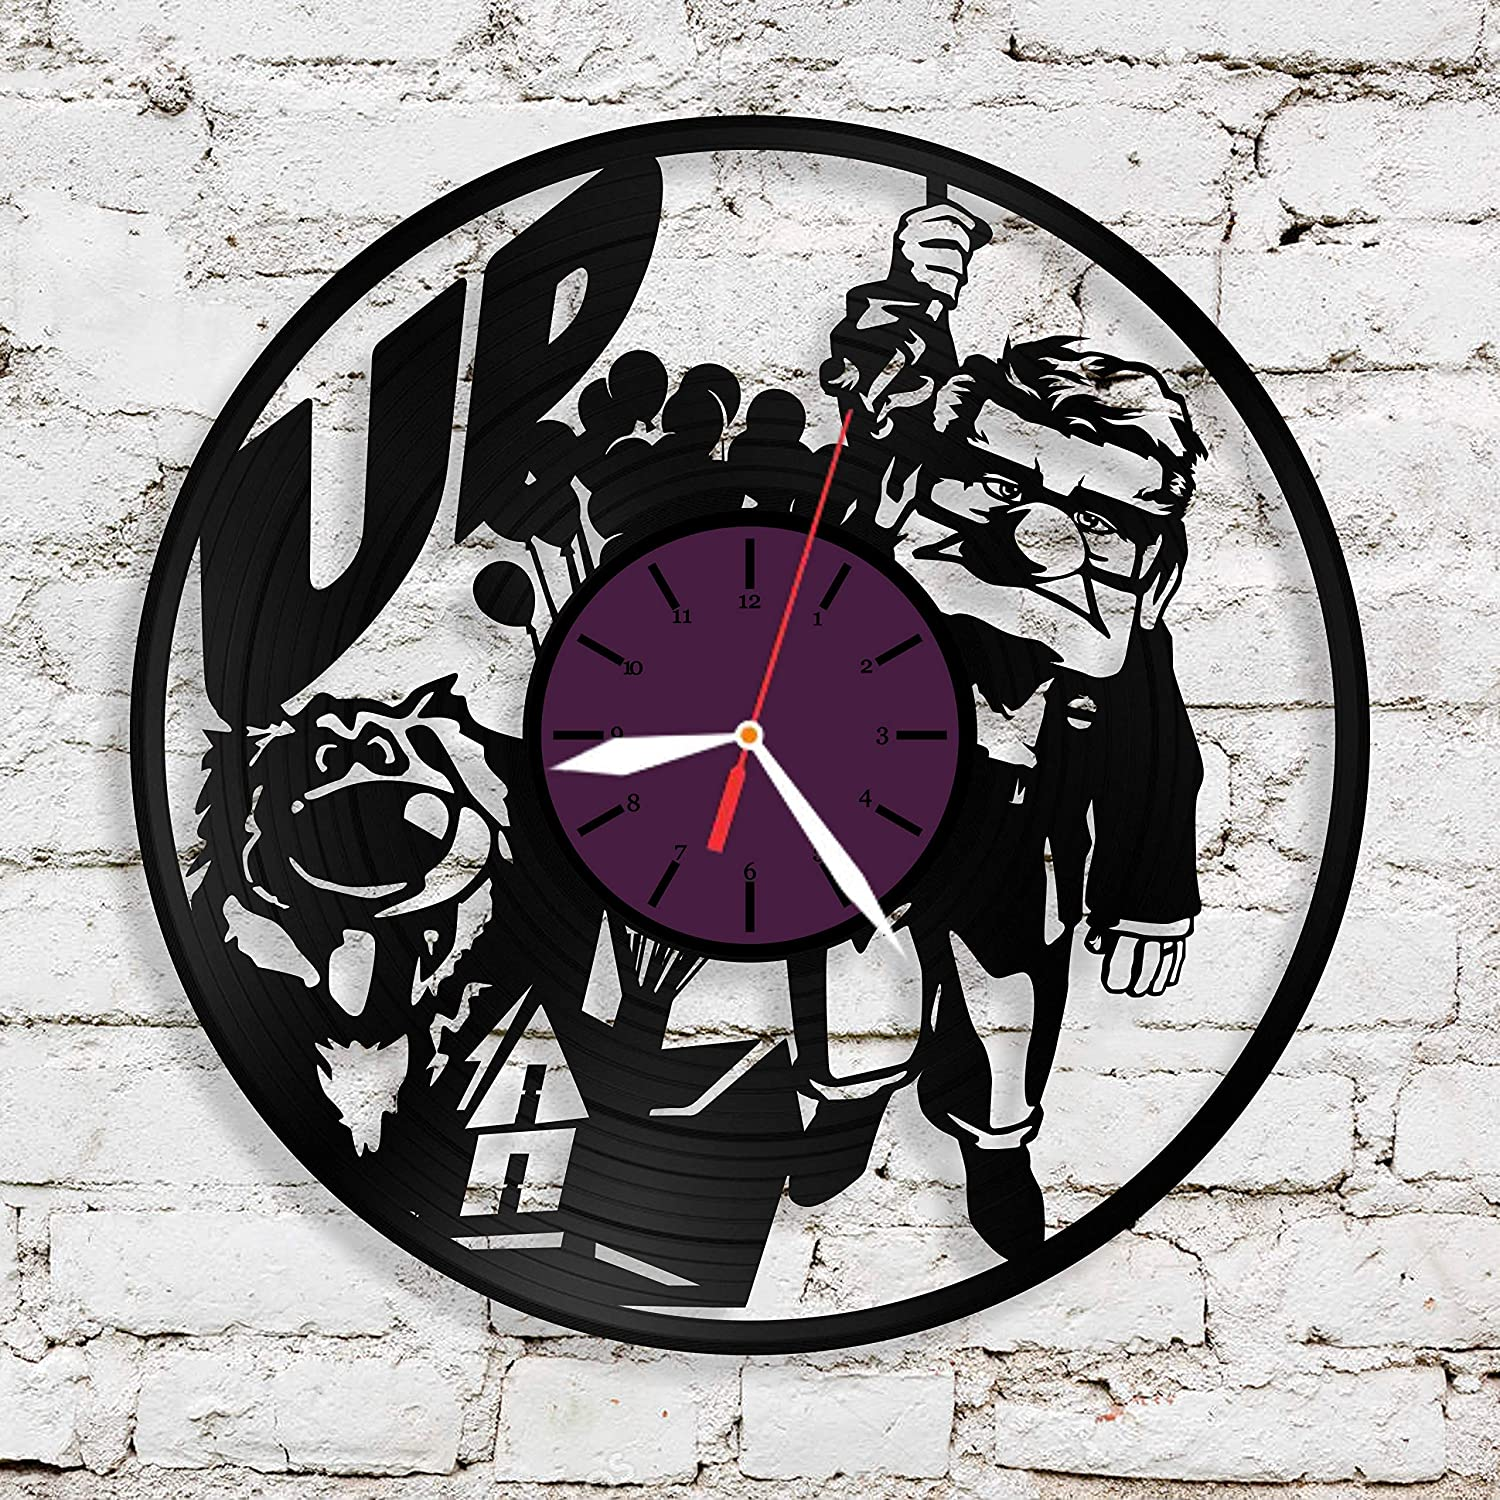 Luchko Decor 1 year warranty Complicatible with Disney's Wall Don't miss the campaign Birthday Clock Up